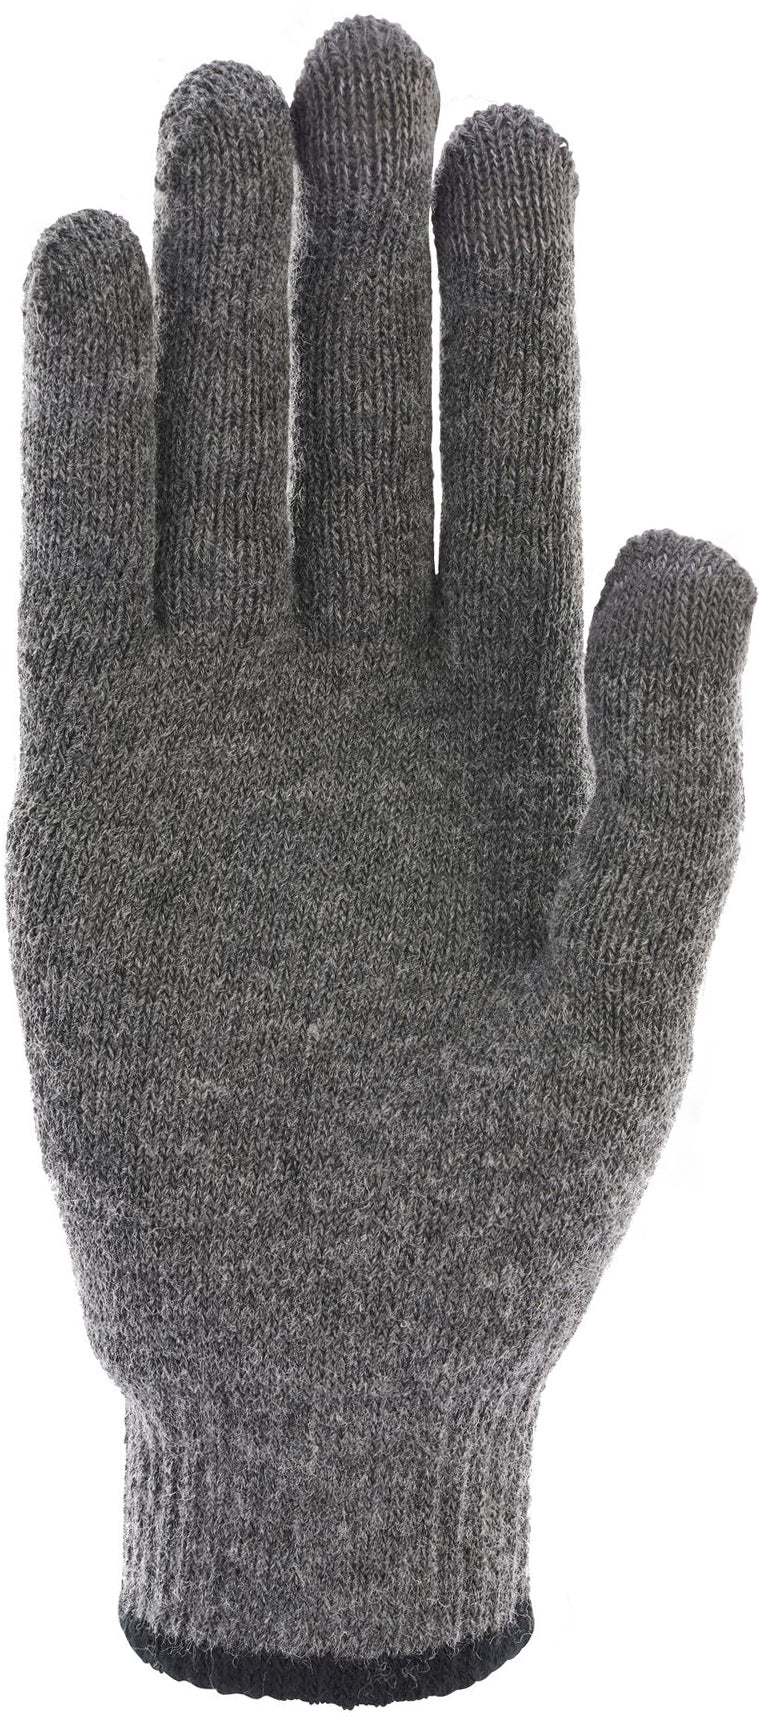 Extremities - Primaloft Touch - Charcoal